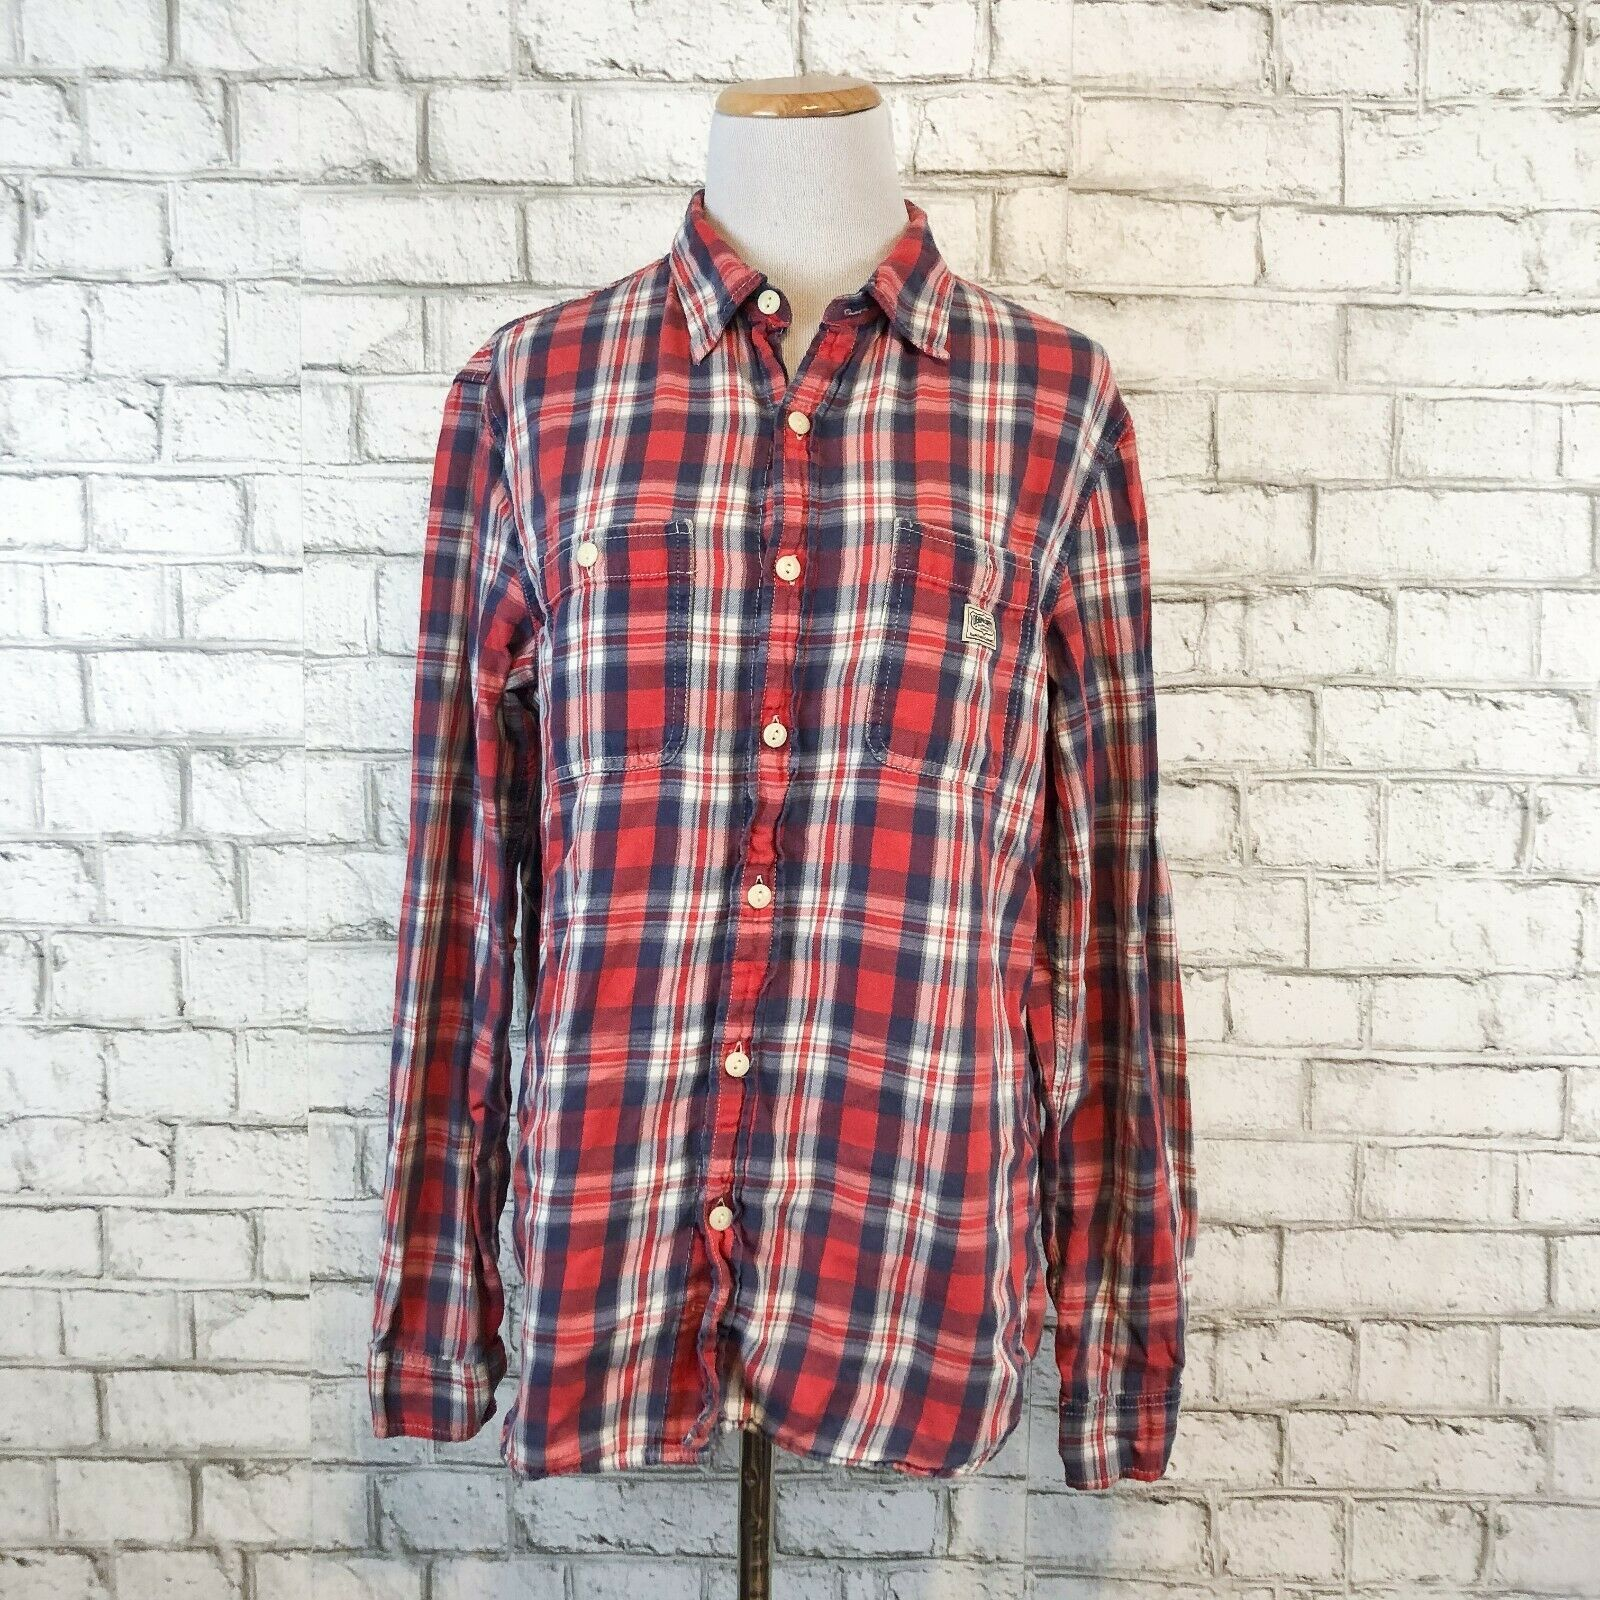 Primary image for Denim Supply by Ralph Lauren Women's Red Plaid Button Front Shirt Size Medium